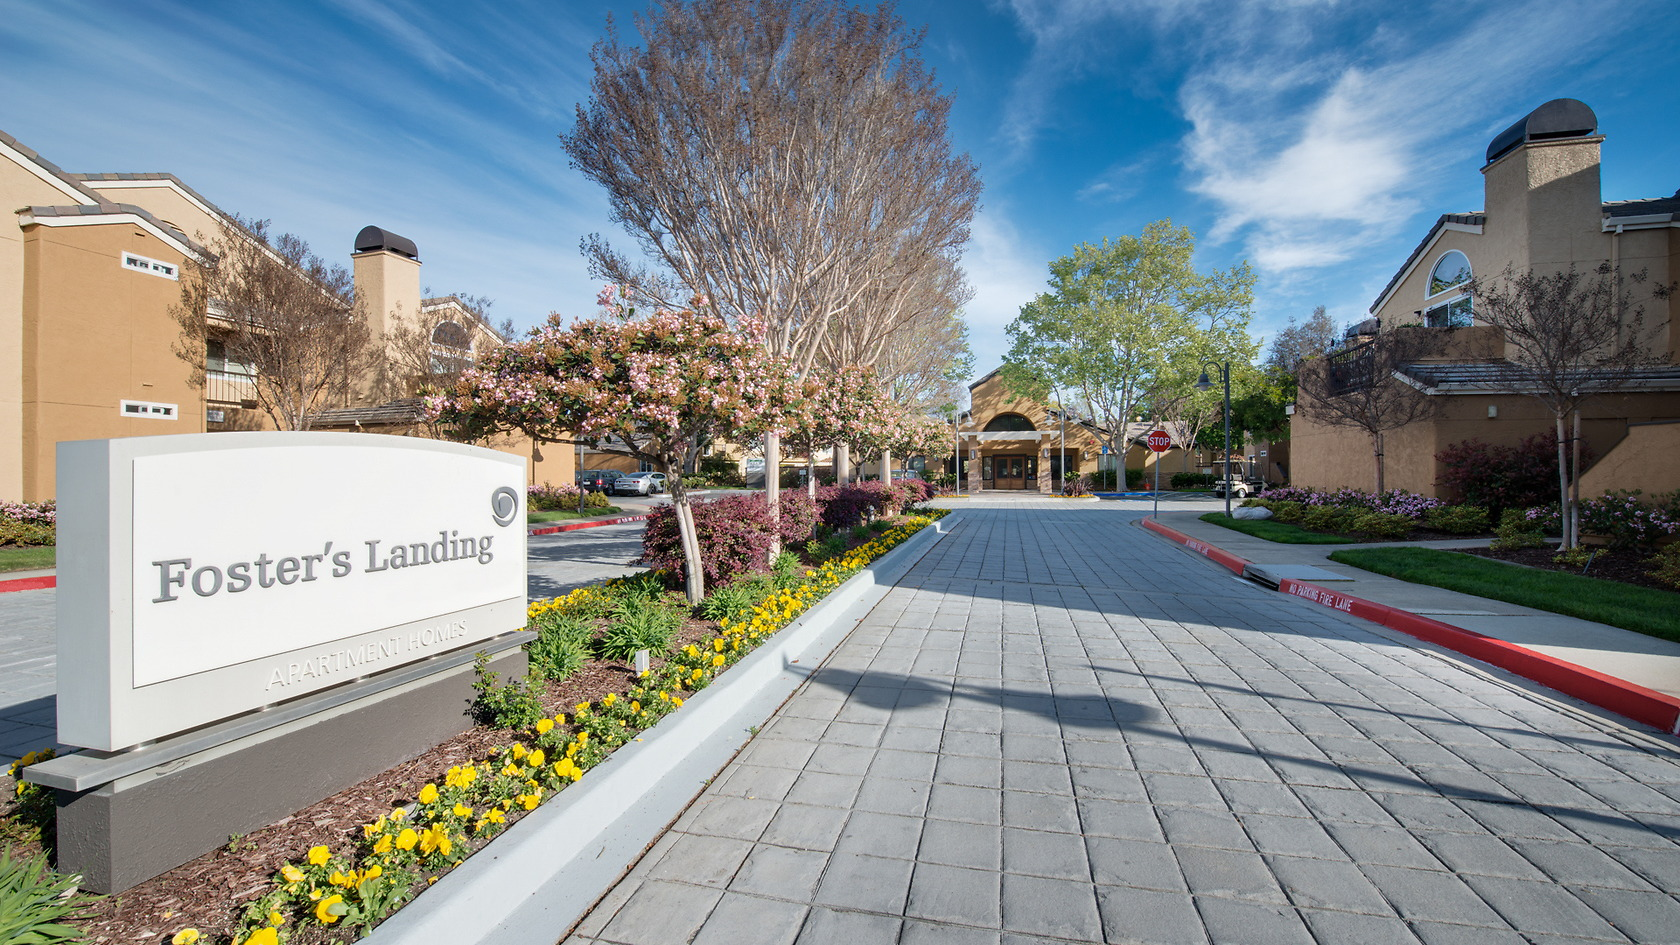 Foster's Landing Corporate Rental-Sample Image of Foster City CA Intern Housing